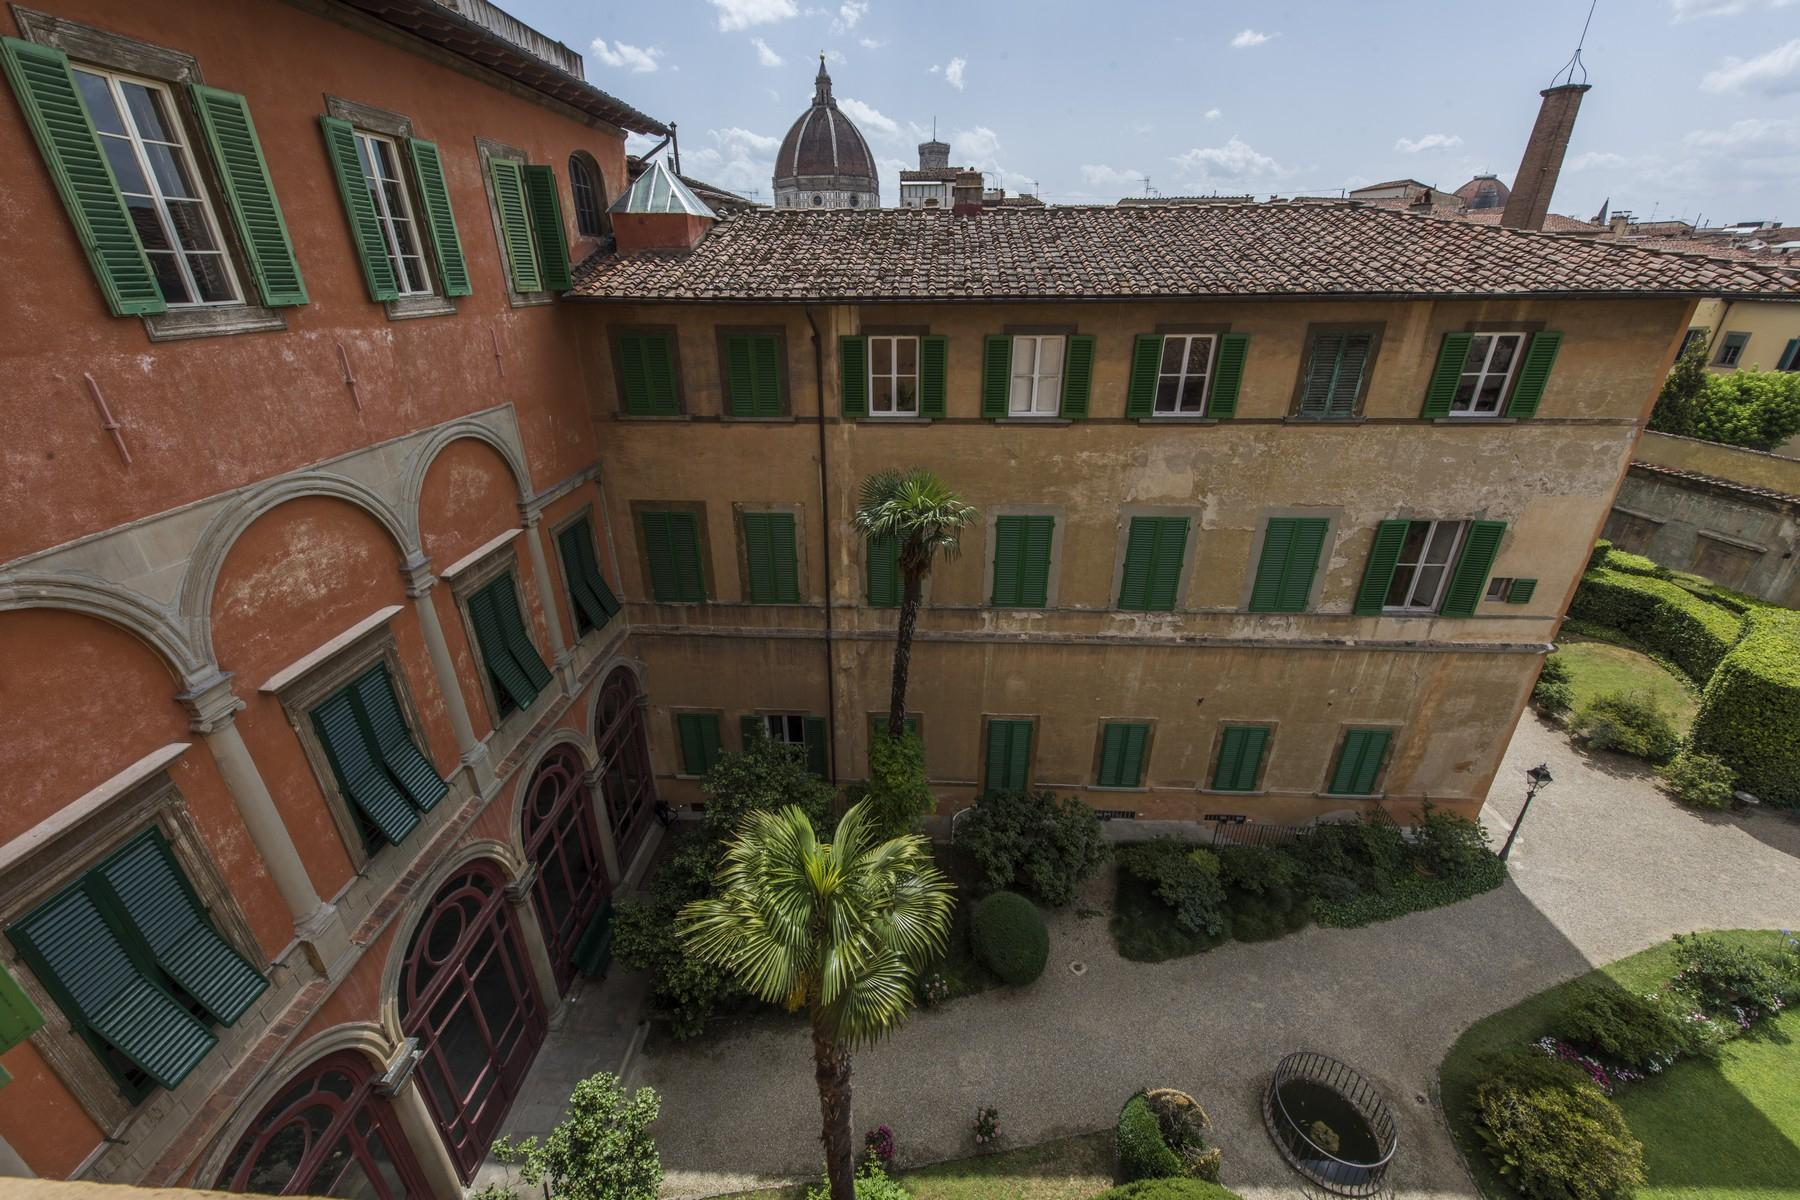 Magnificent 520sqm penthouse in a historic Florentine palazzo. - 21